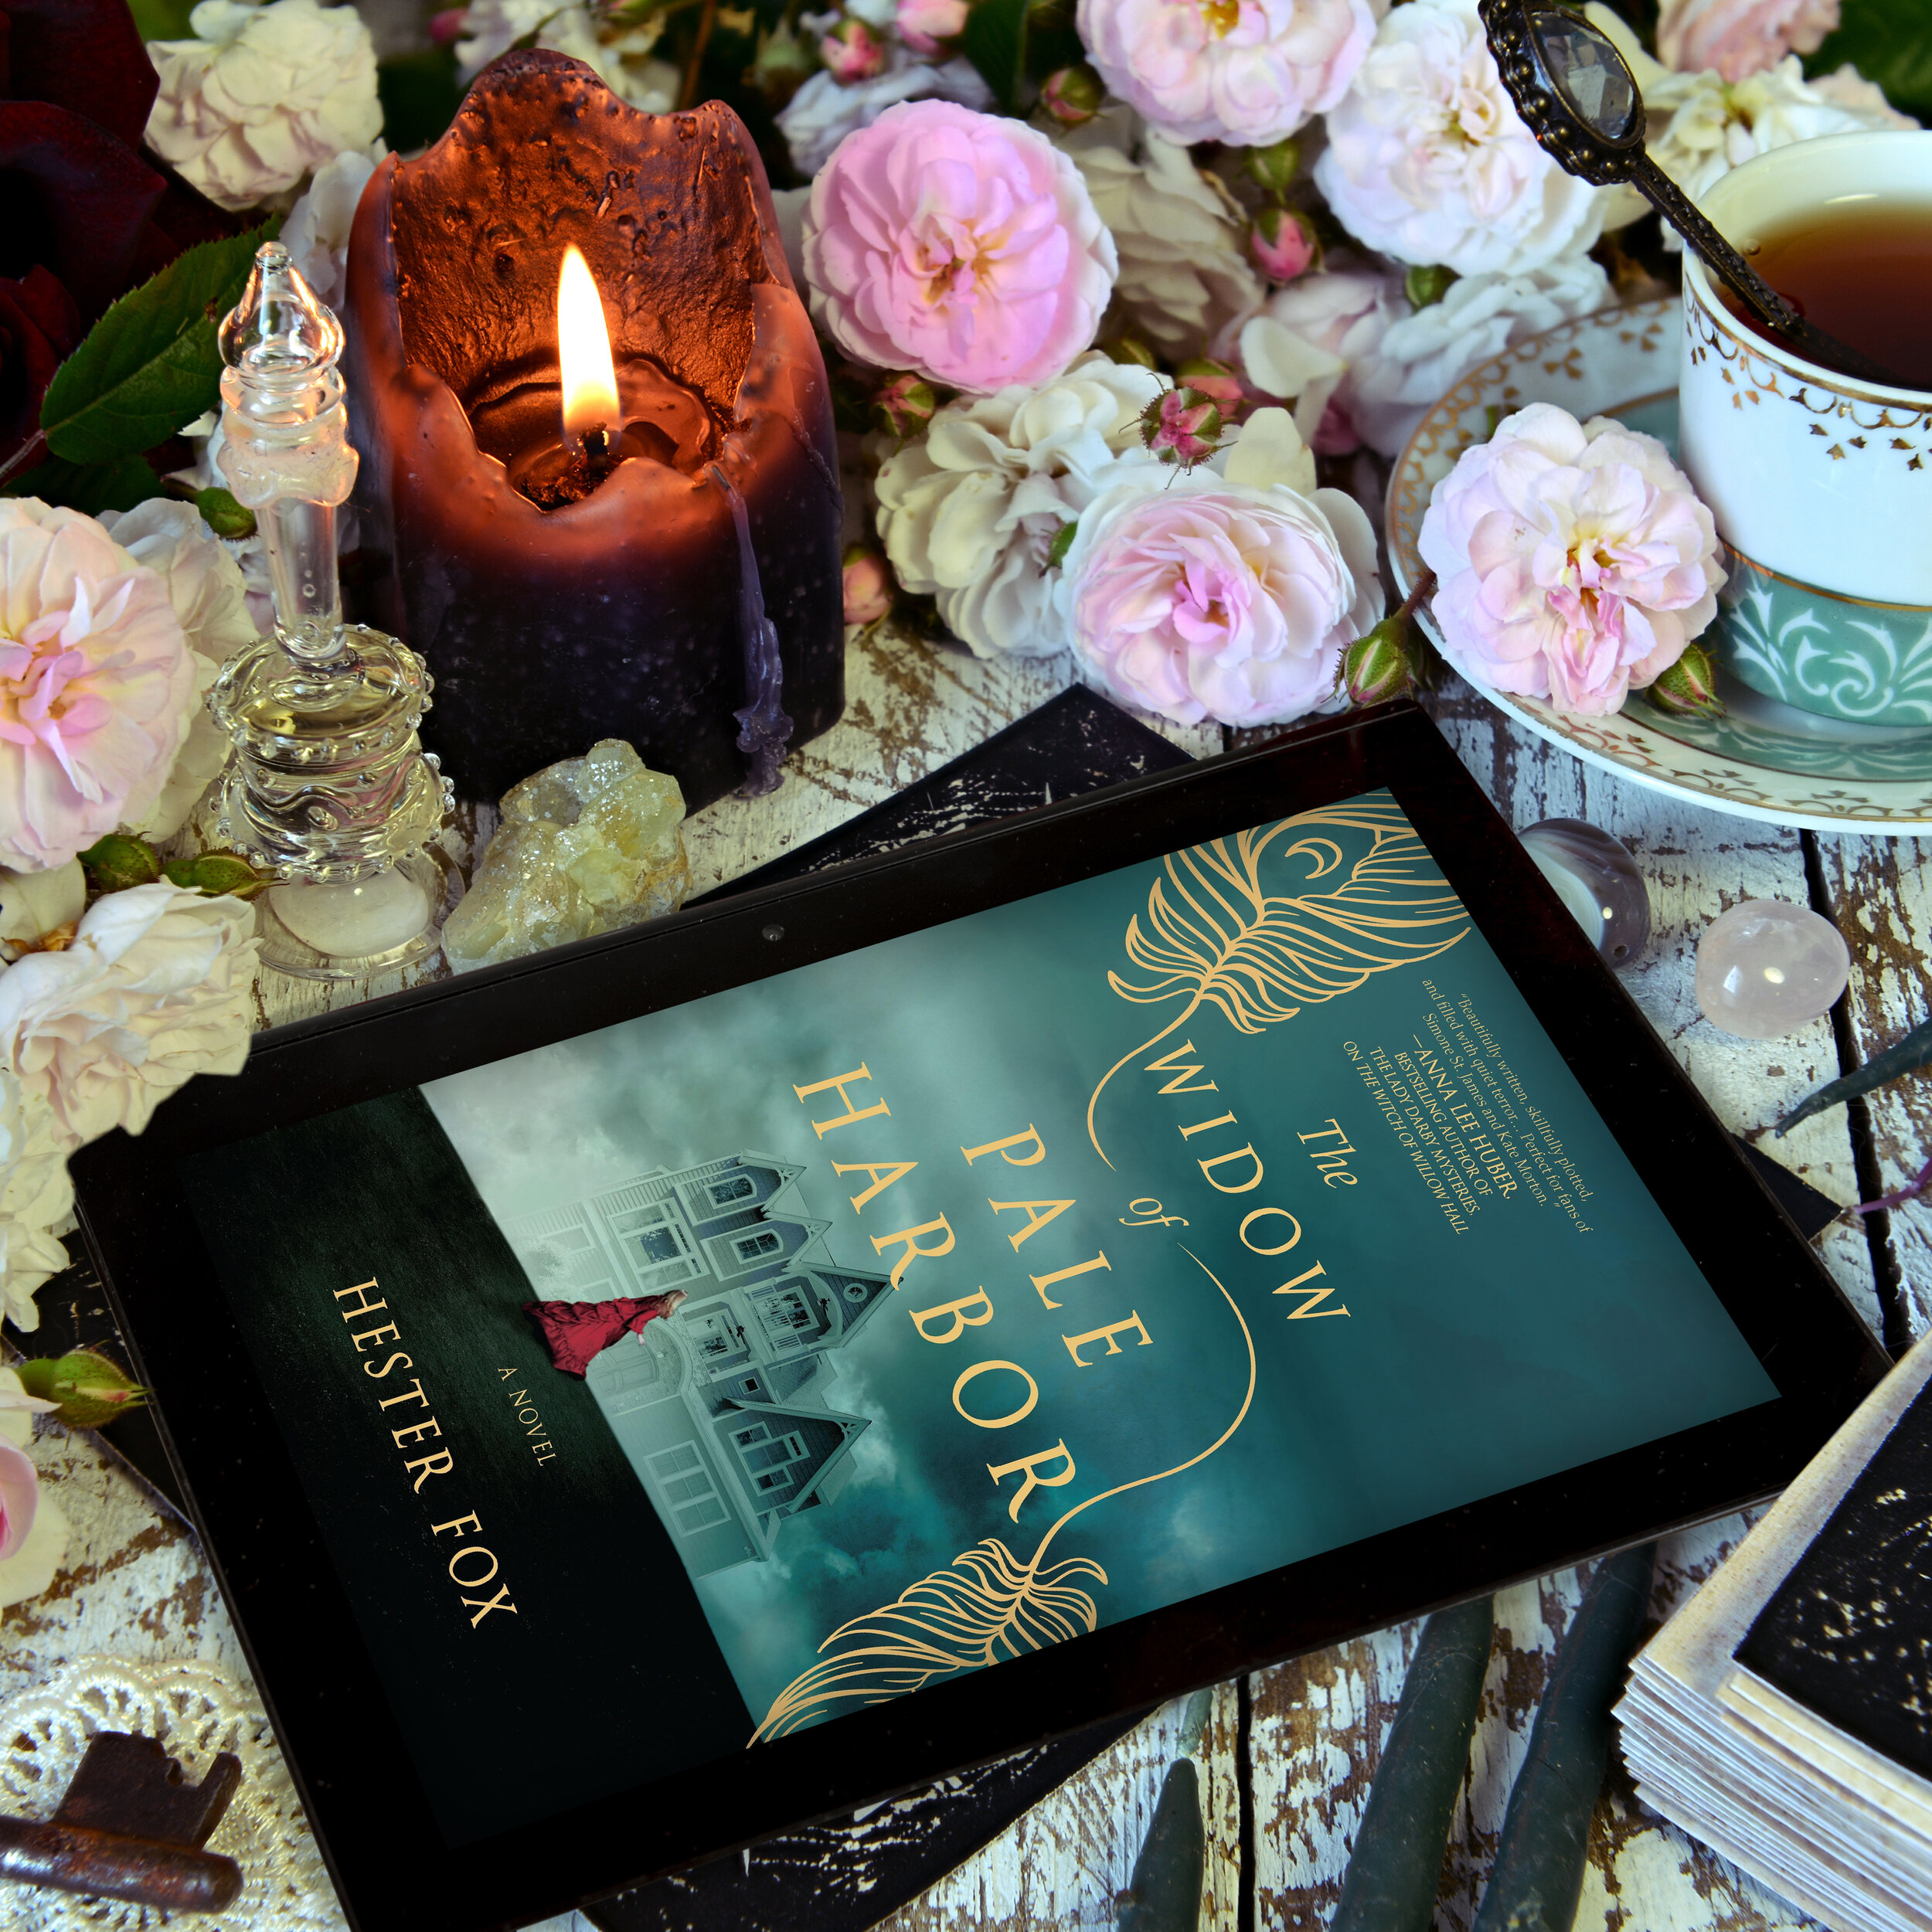 ** Book Review for THE WIDOW OF PALE HARBOR by Hester Fox **